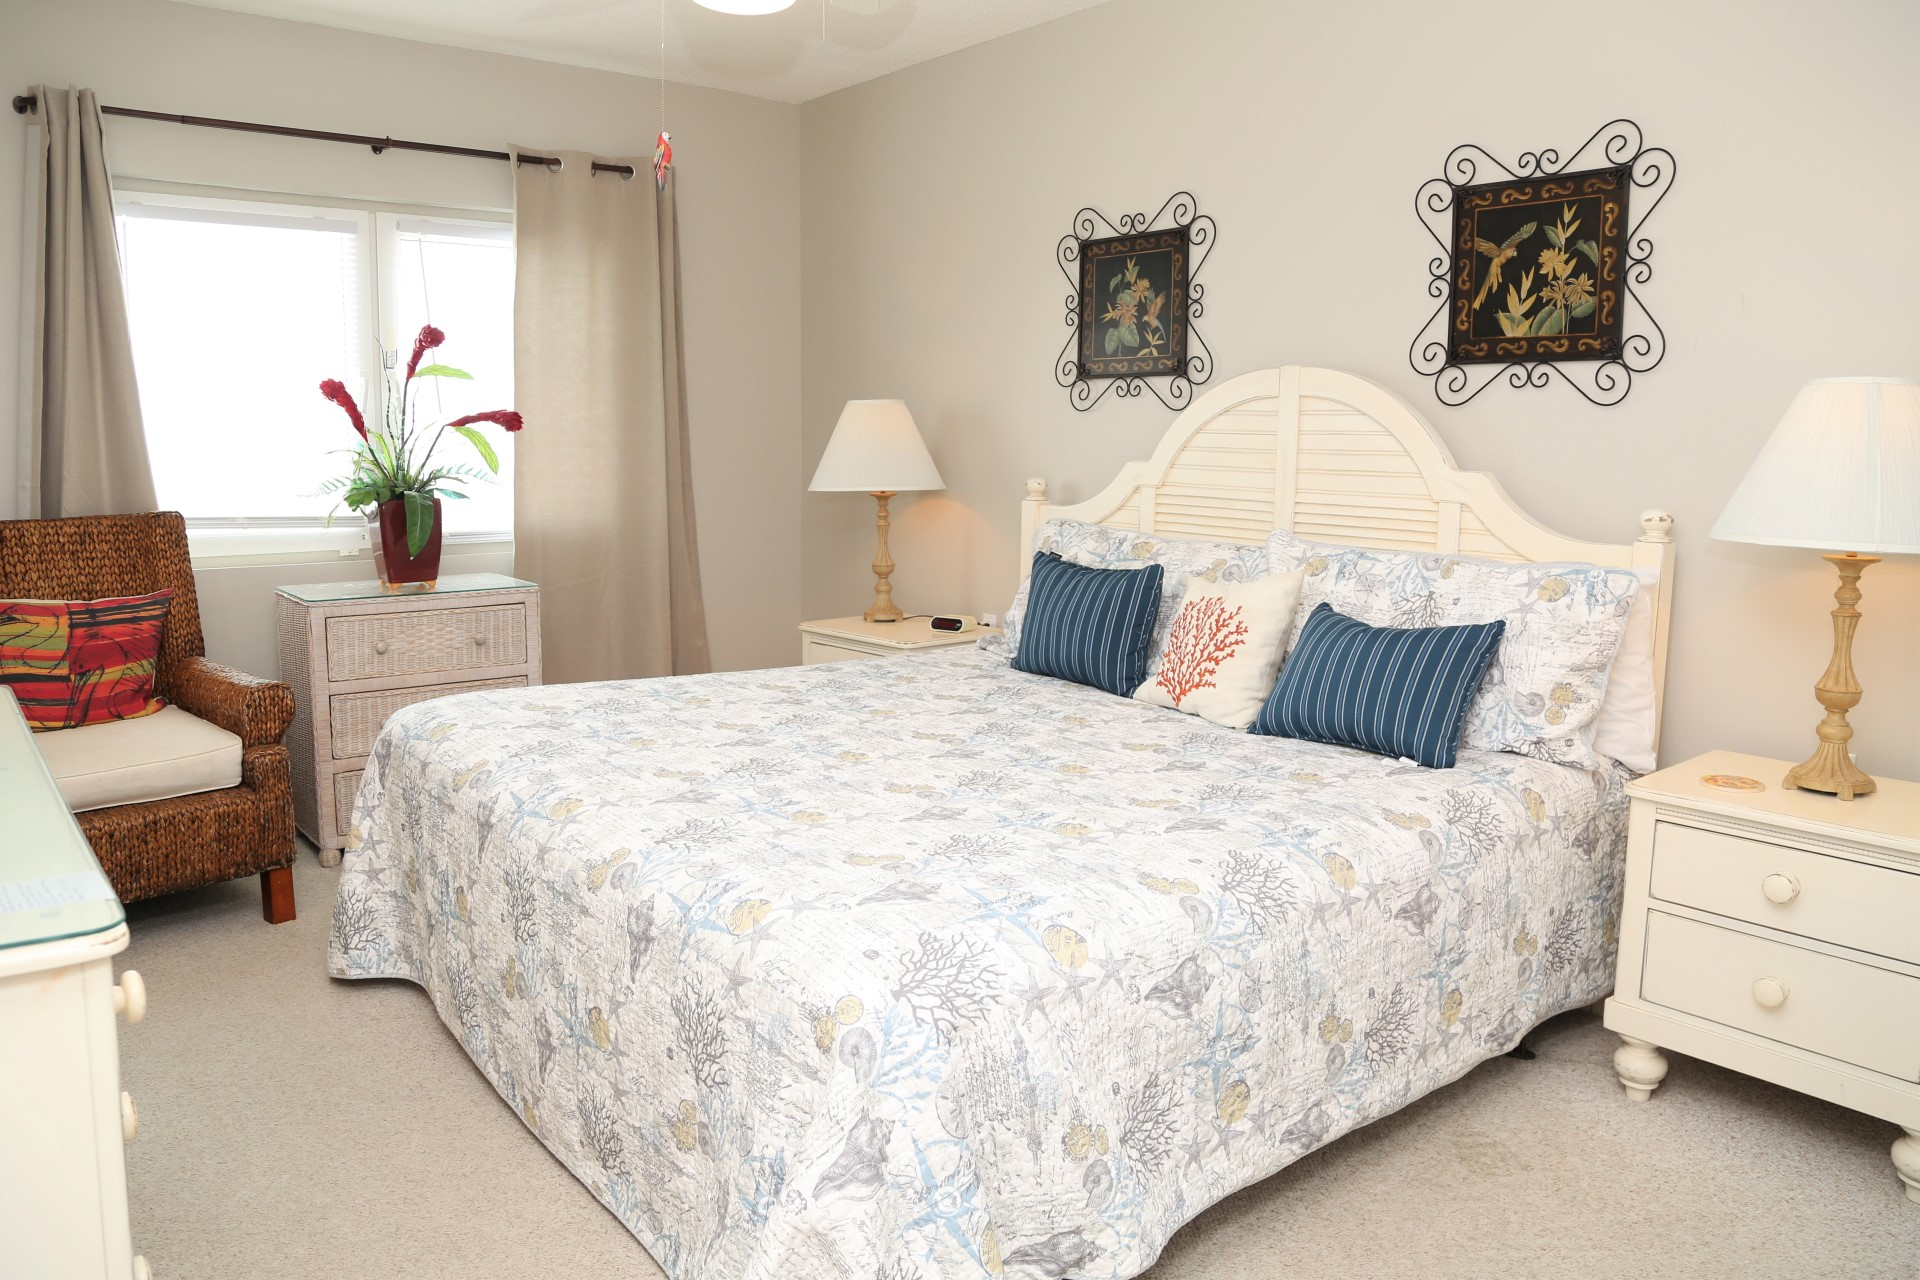 The main bedroom includes a king-size bed.